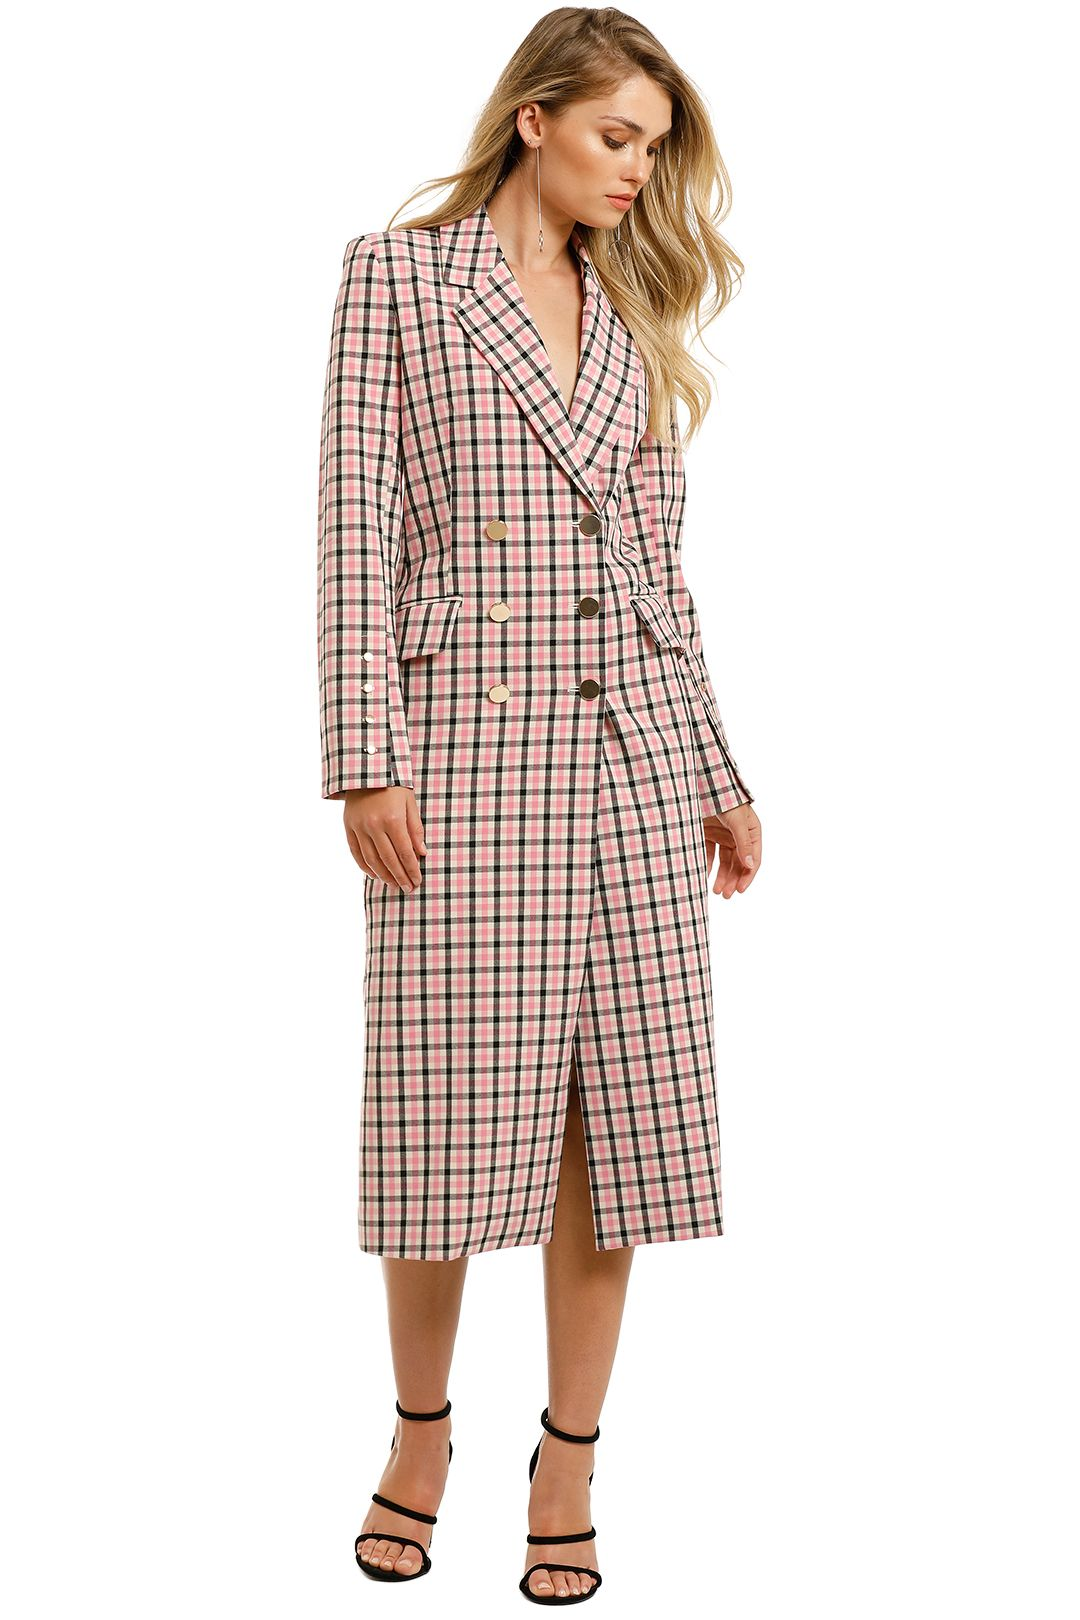 Pasduchas-Checker-Coat-Pink-Check-Front